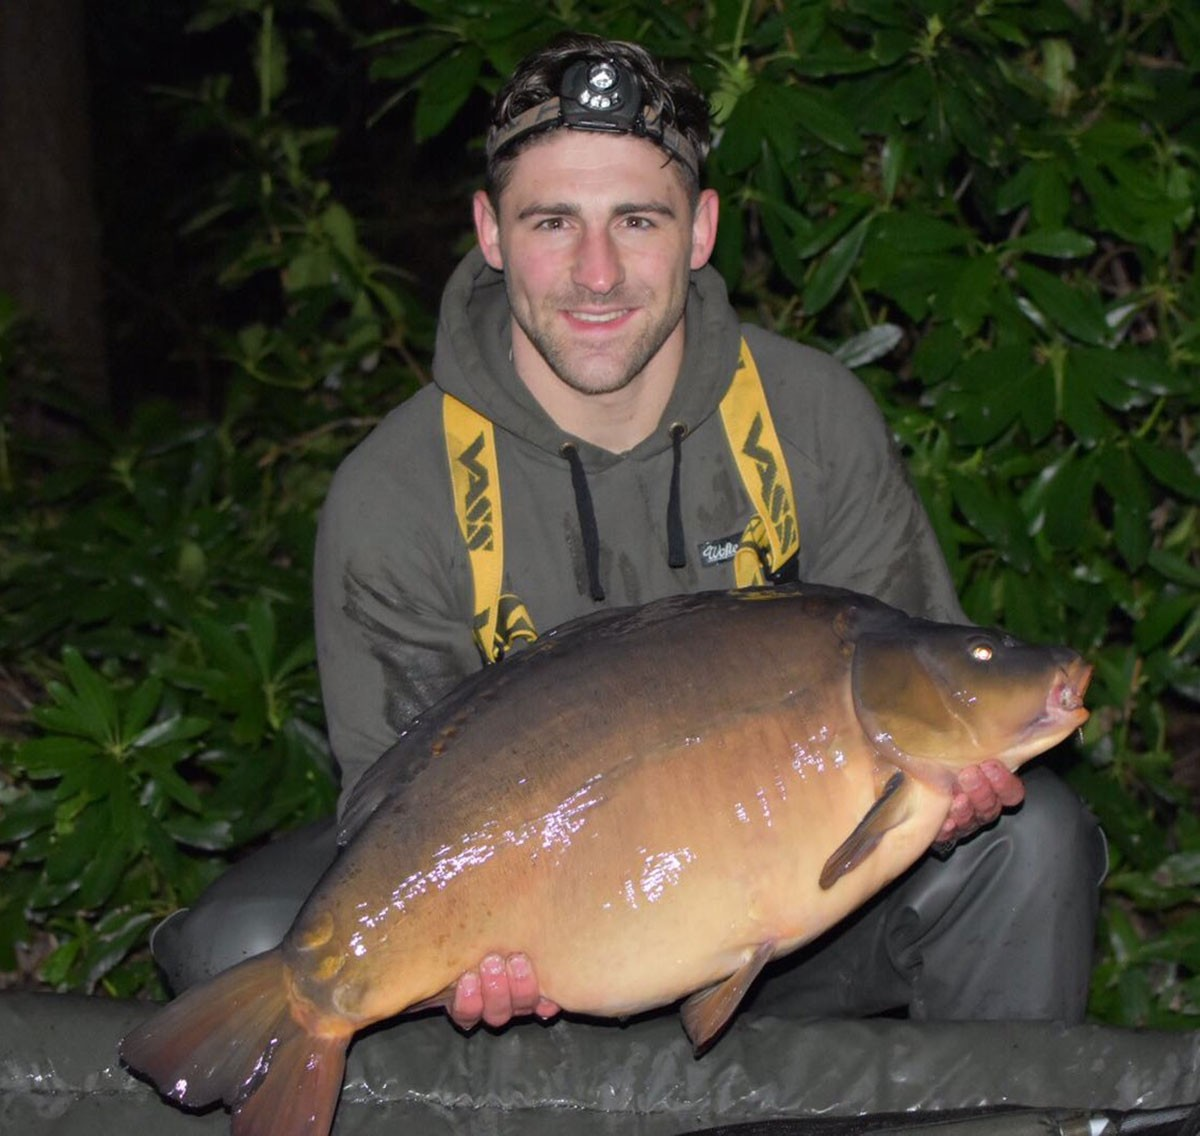 30-06 caught on Boilies